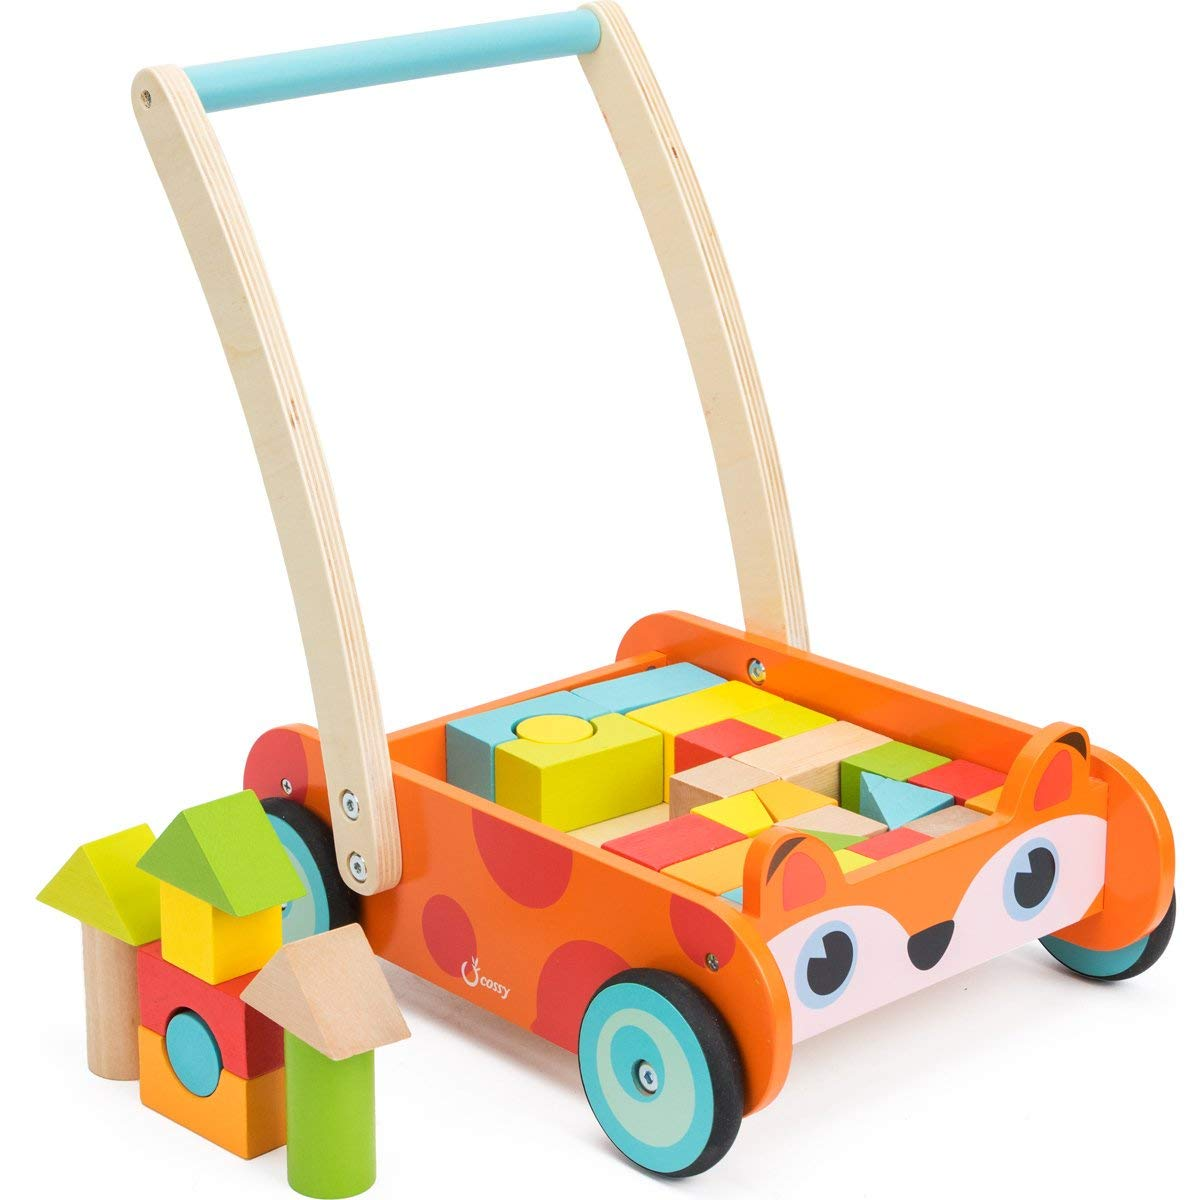 cossy Wooden Baby Learning Walker Toddler Toys for 1 Year Old and up 35 pcs Fox Blocks and Roll Cart Push Toy Updated Version